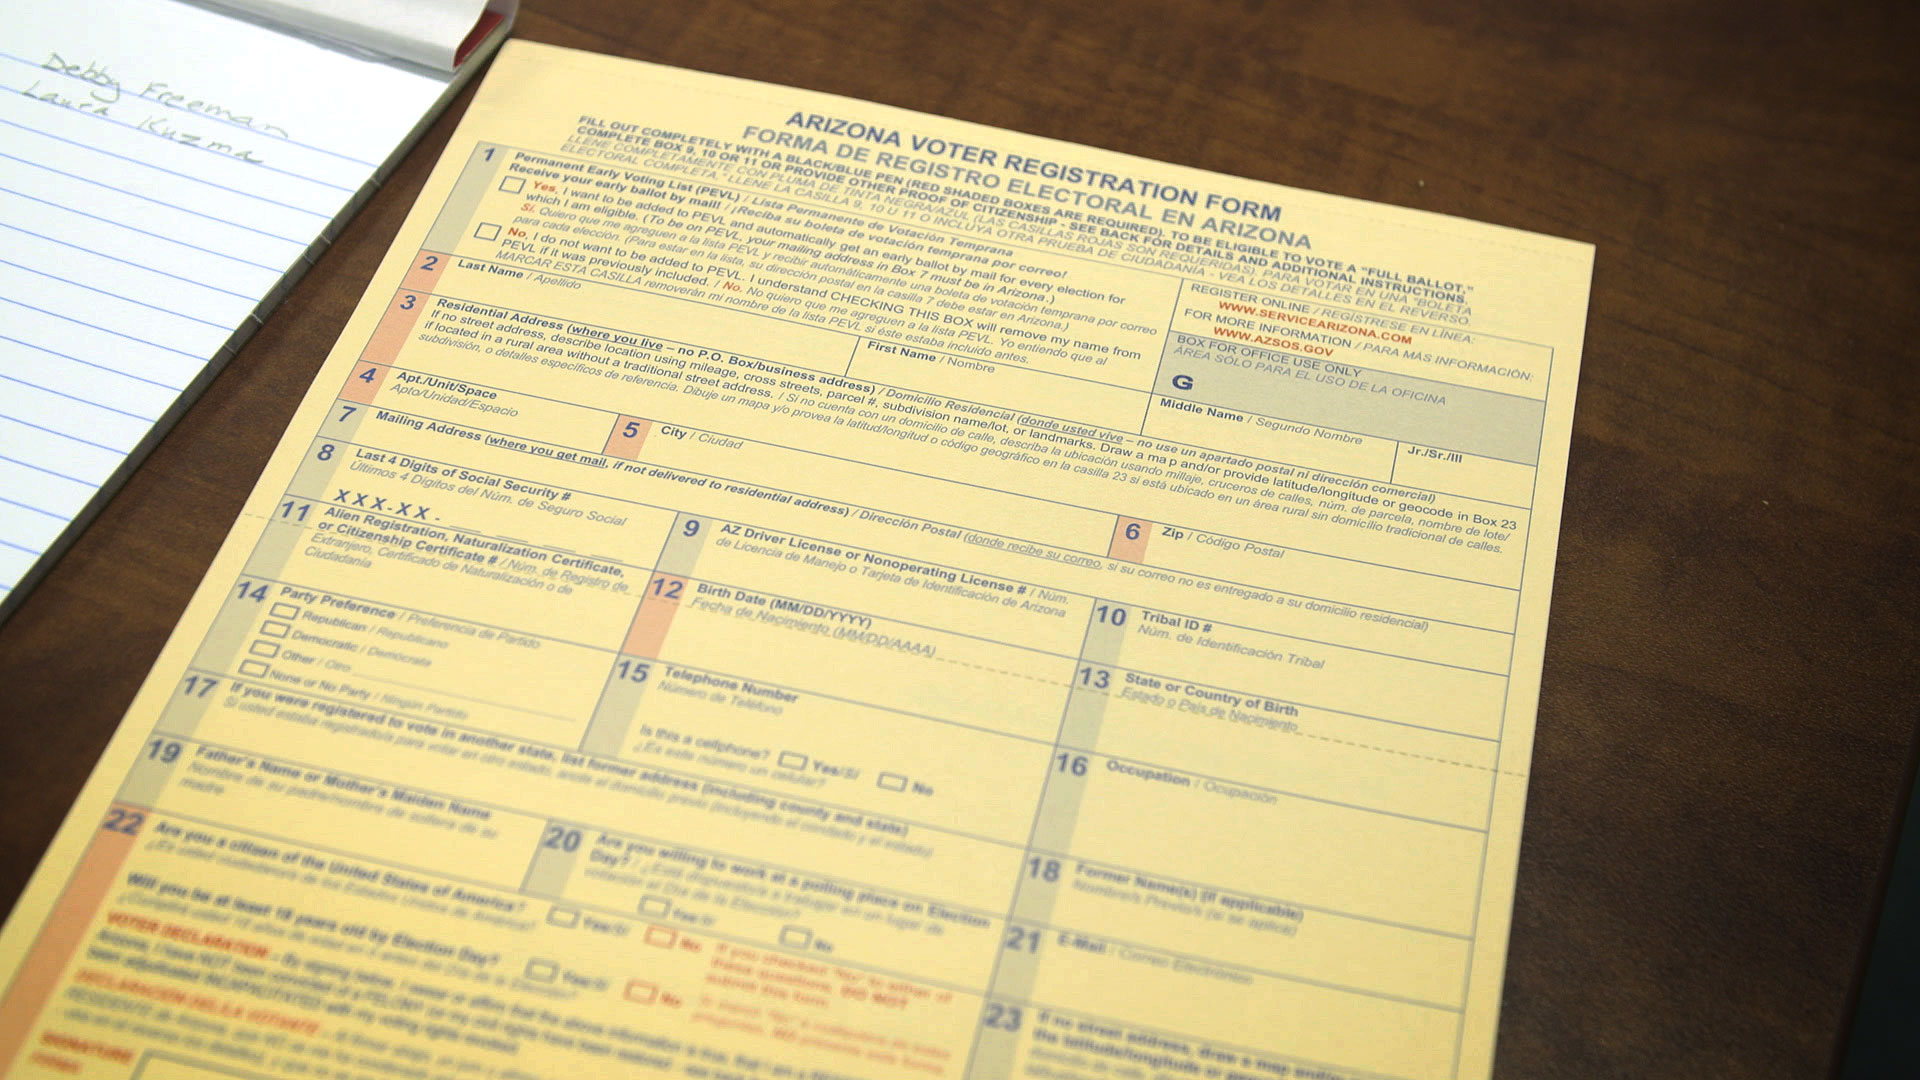 File image of a voter registration form for Arizona.